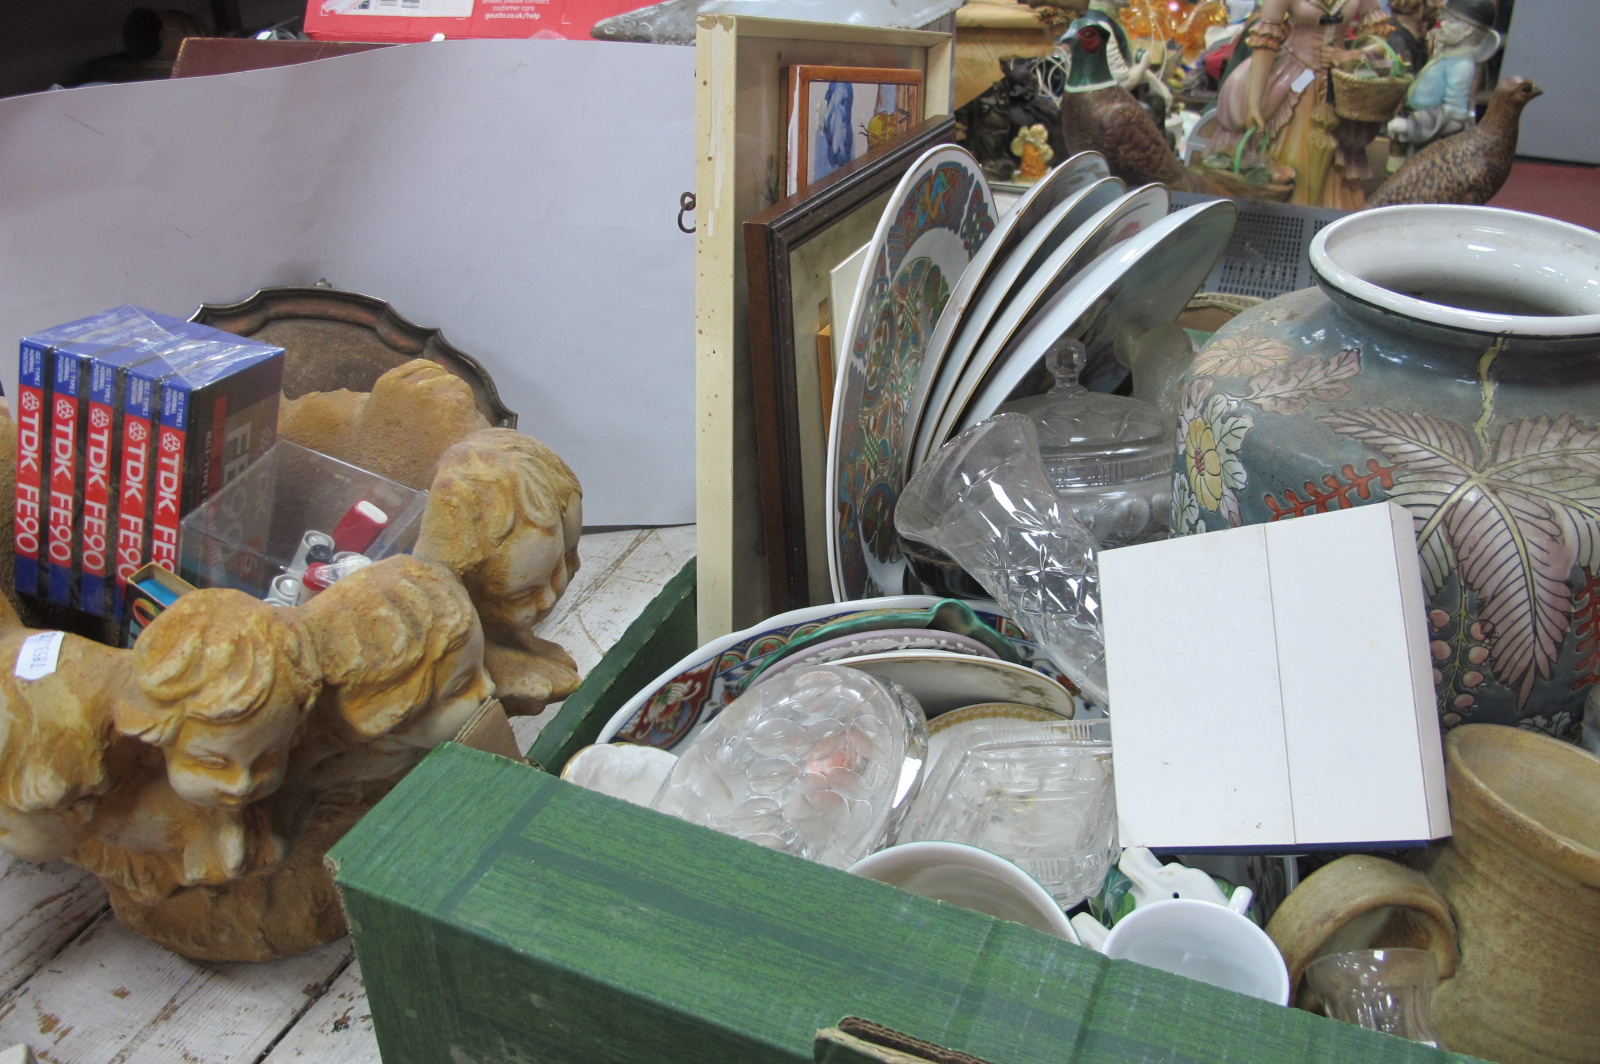 Studio Pottery Bowl, Jug, Cabinet Plates, etc:- One Box, together with a planter with cherub heads.